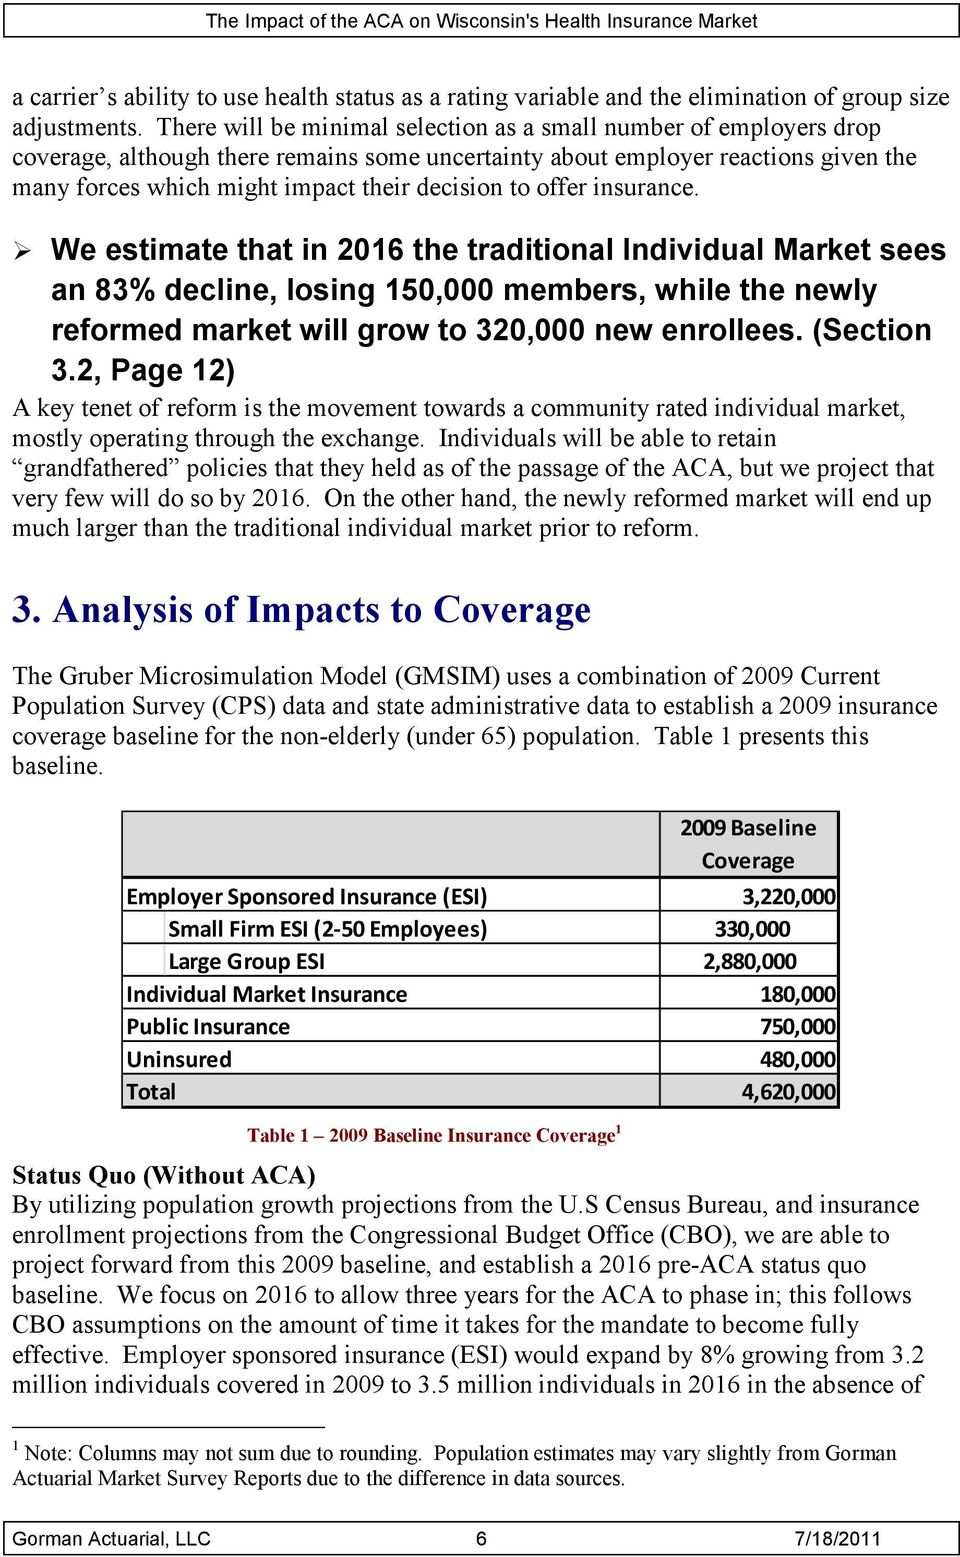 to offer insurance. We estimate that in 2016 the traditional Individual Market sees an 83% decline, losing 150,000 members, while the newly reformed market will grow to 320,000 new enrollees.